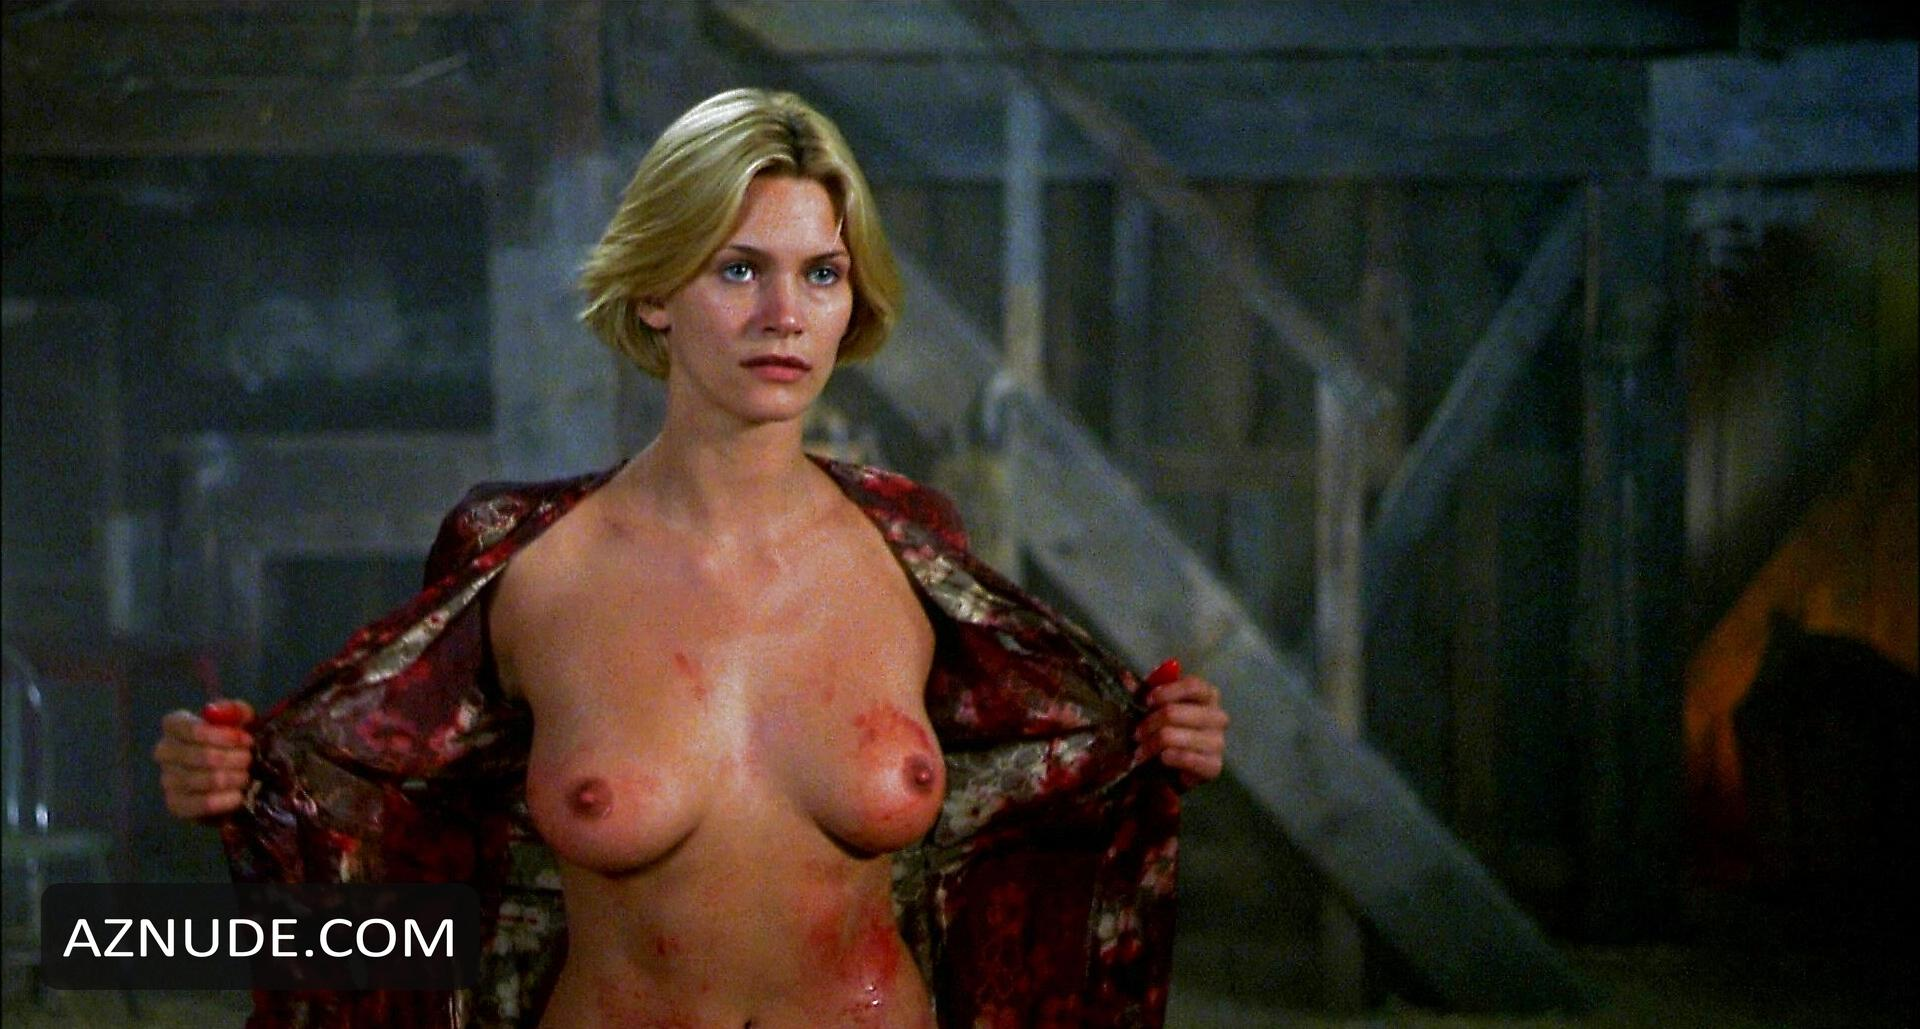 species-movie-nude-scene